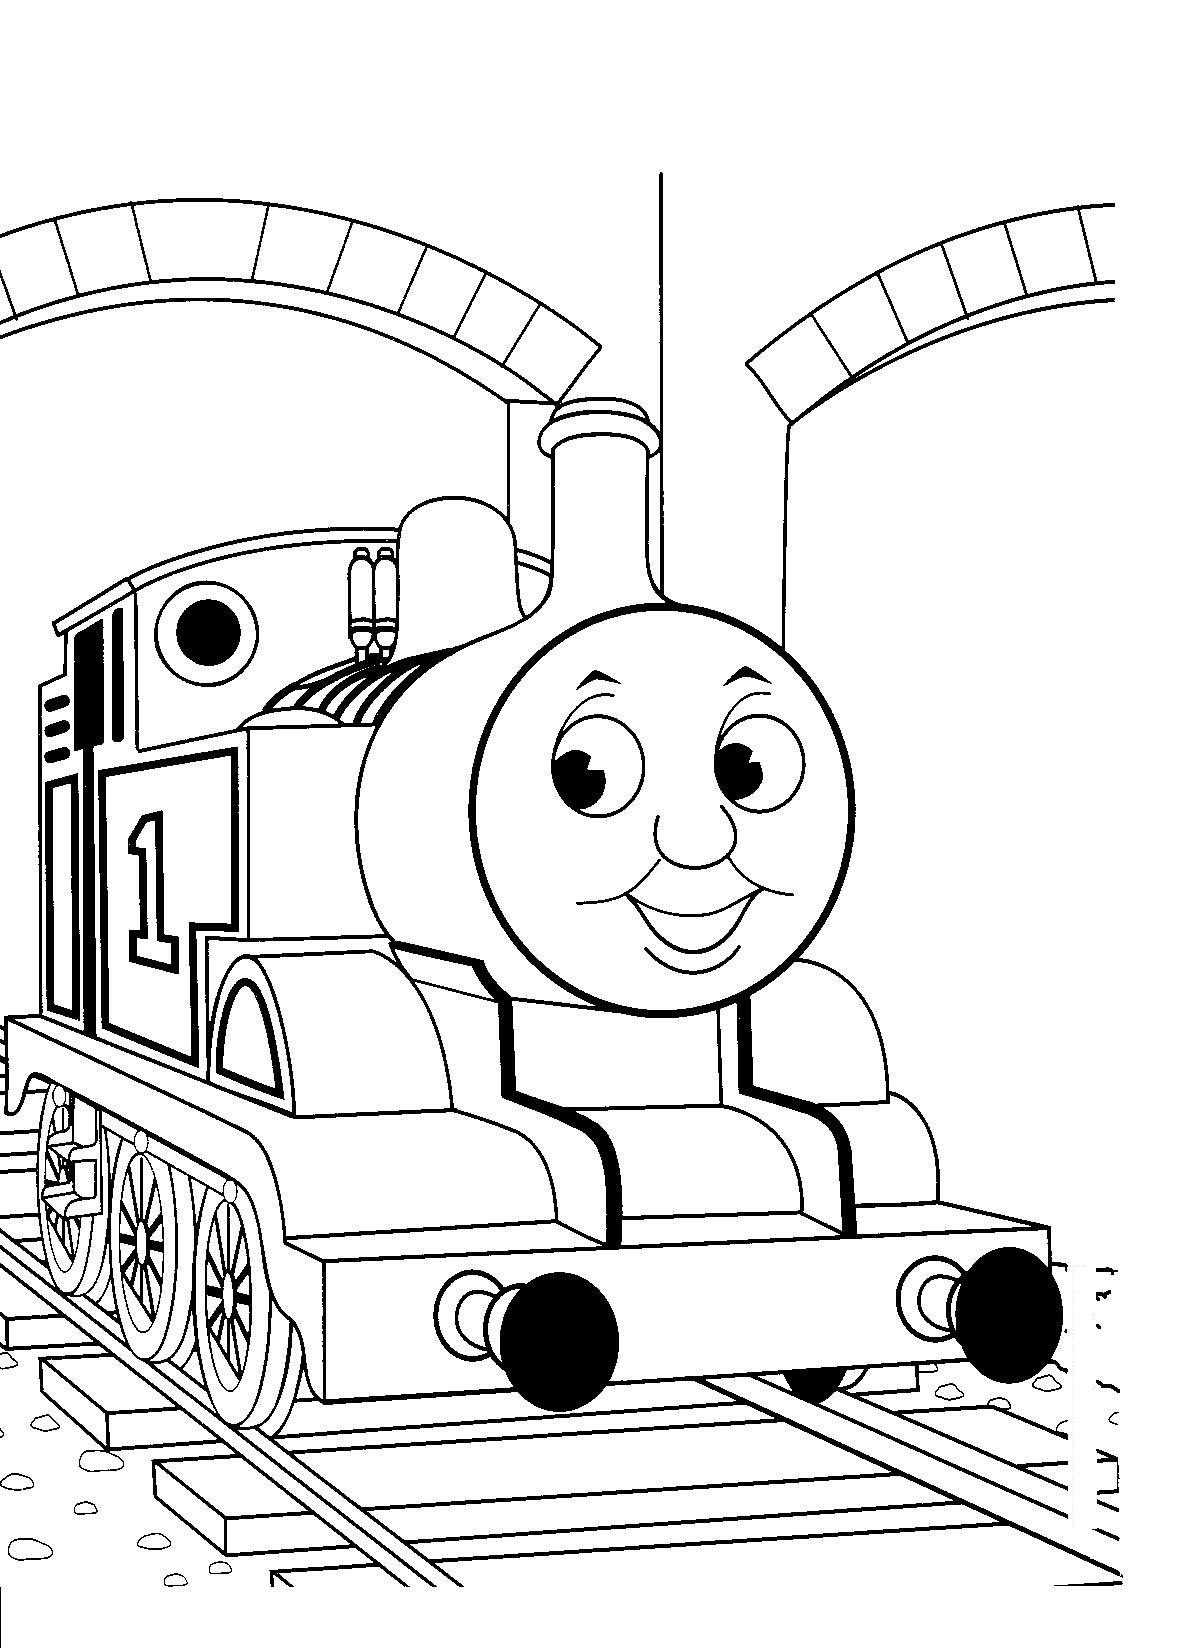 Free Printable Train Coloring Pages For Kids - Free Printable Pictures To Color